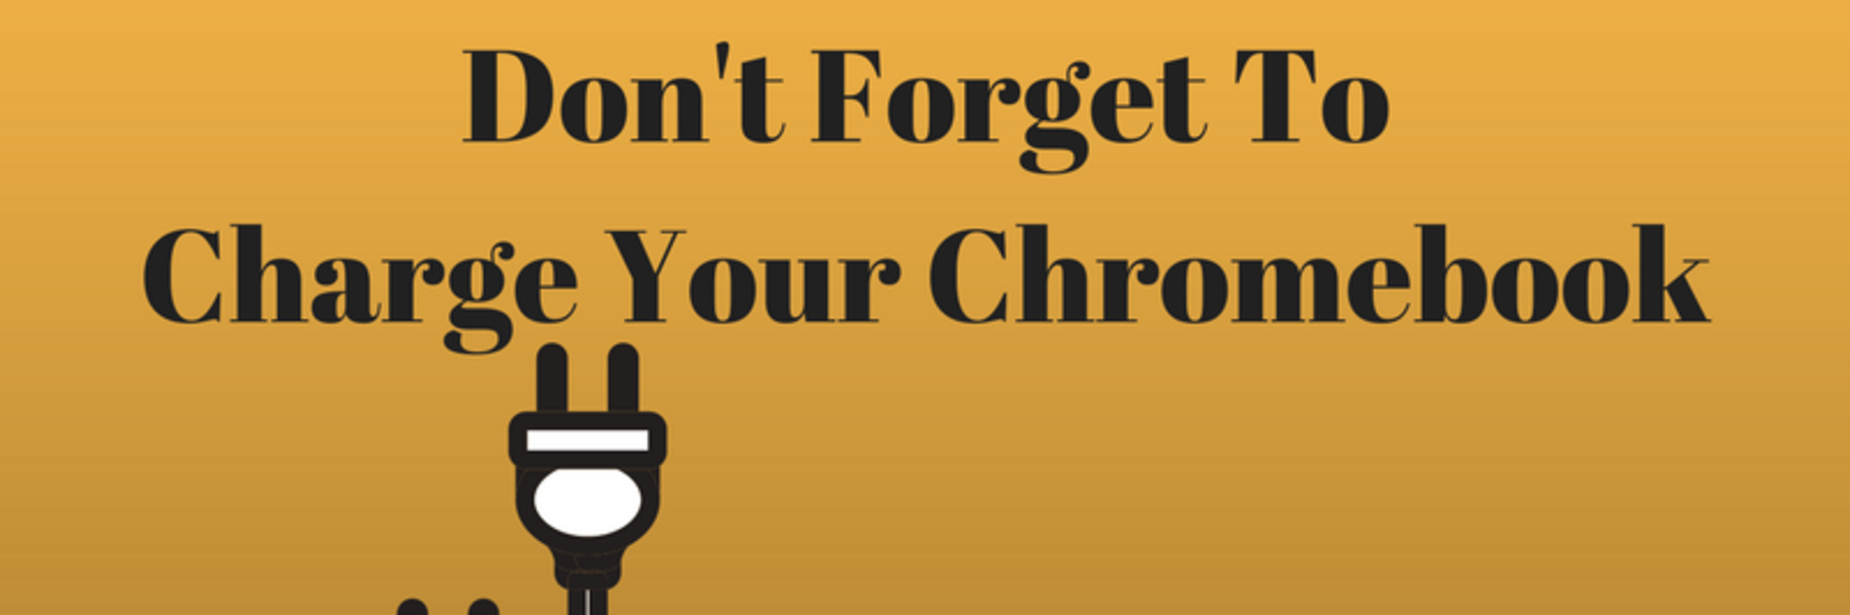 charge your chromebook